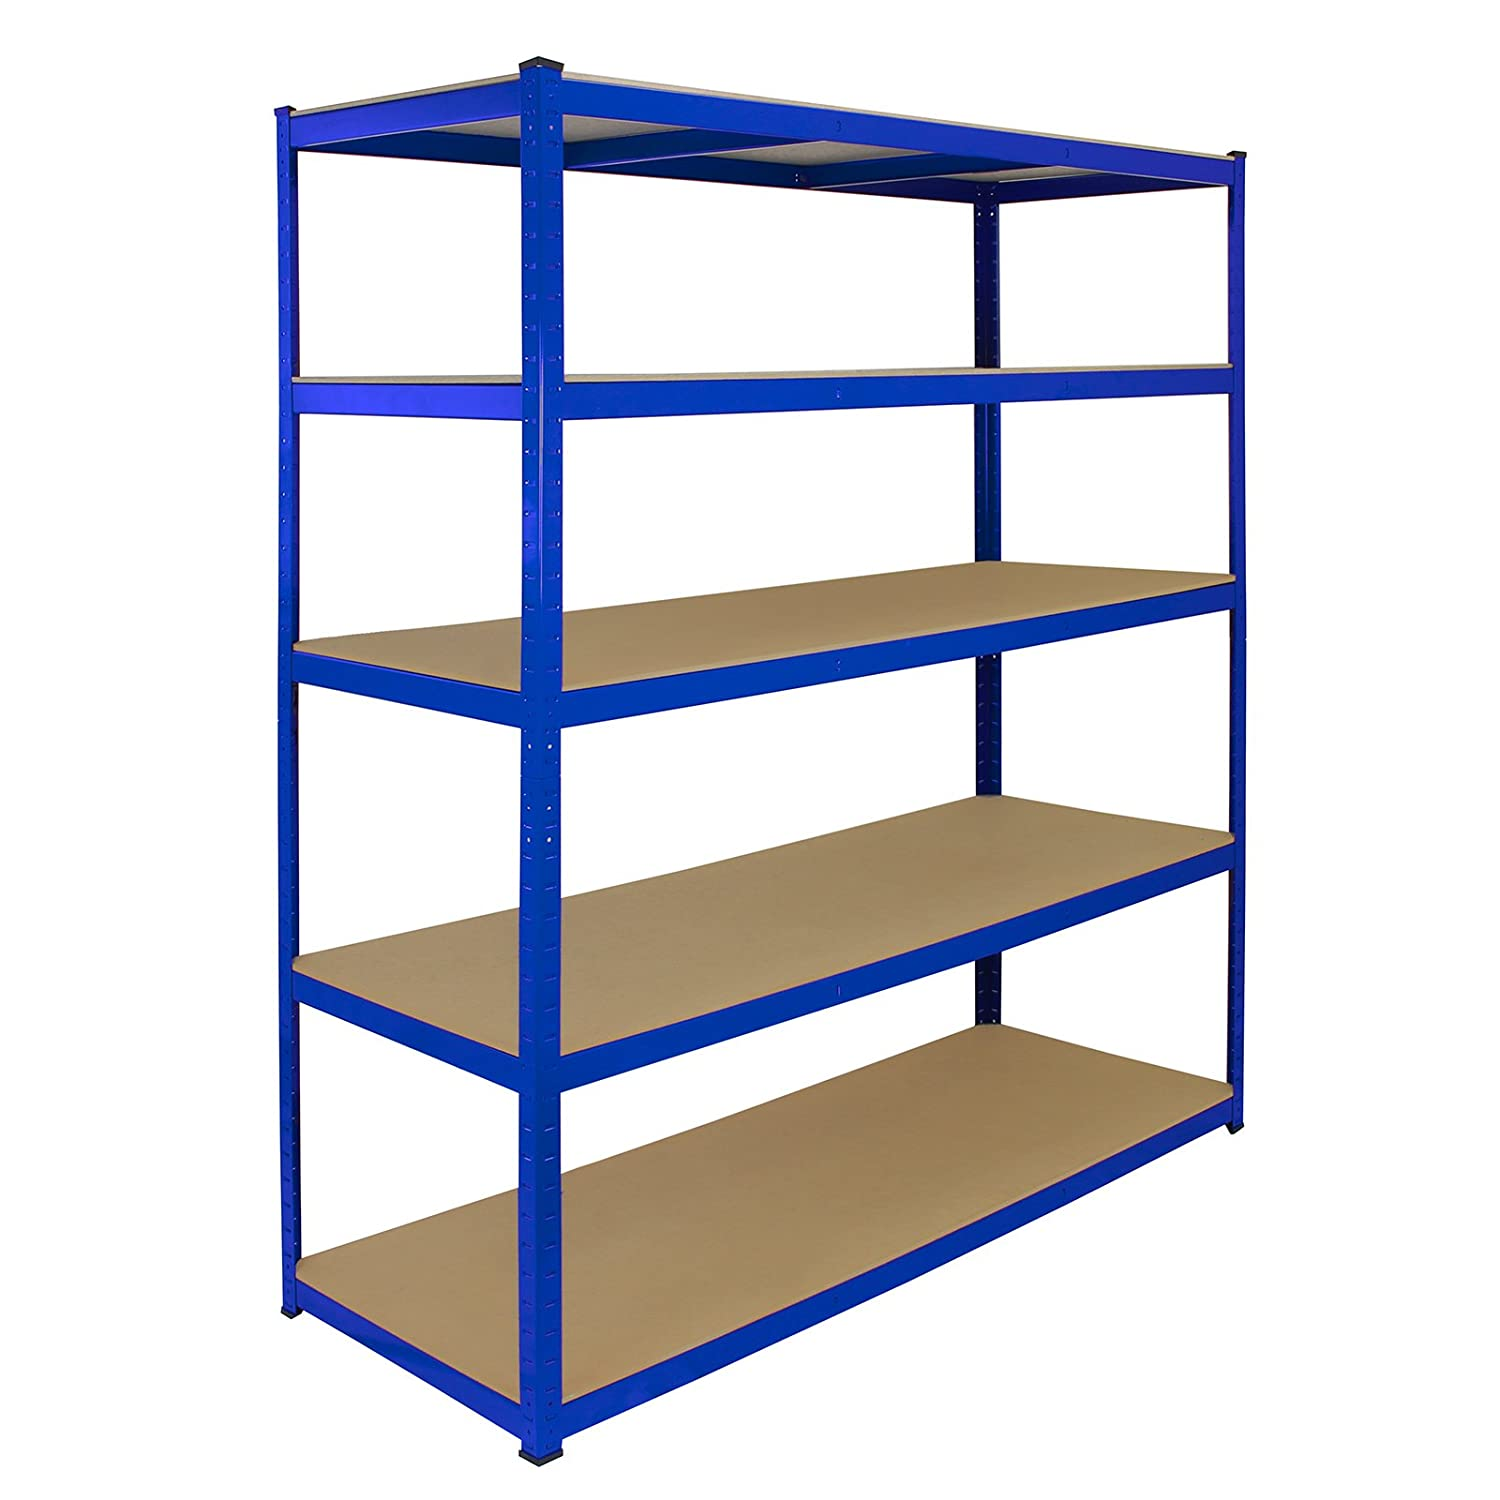 Monster Racking T-rax Extra Wide Storage Shelves, Blue